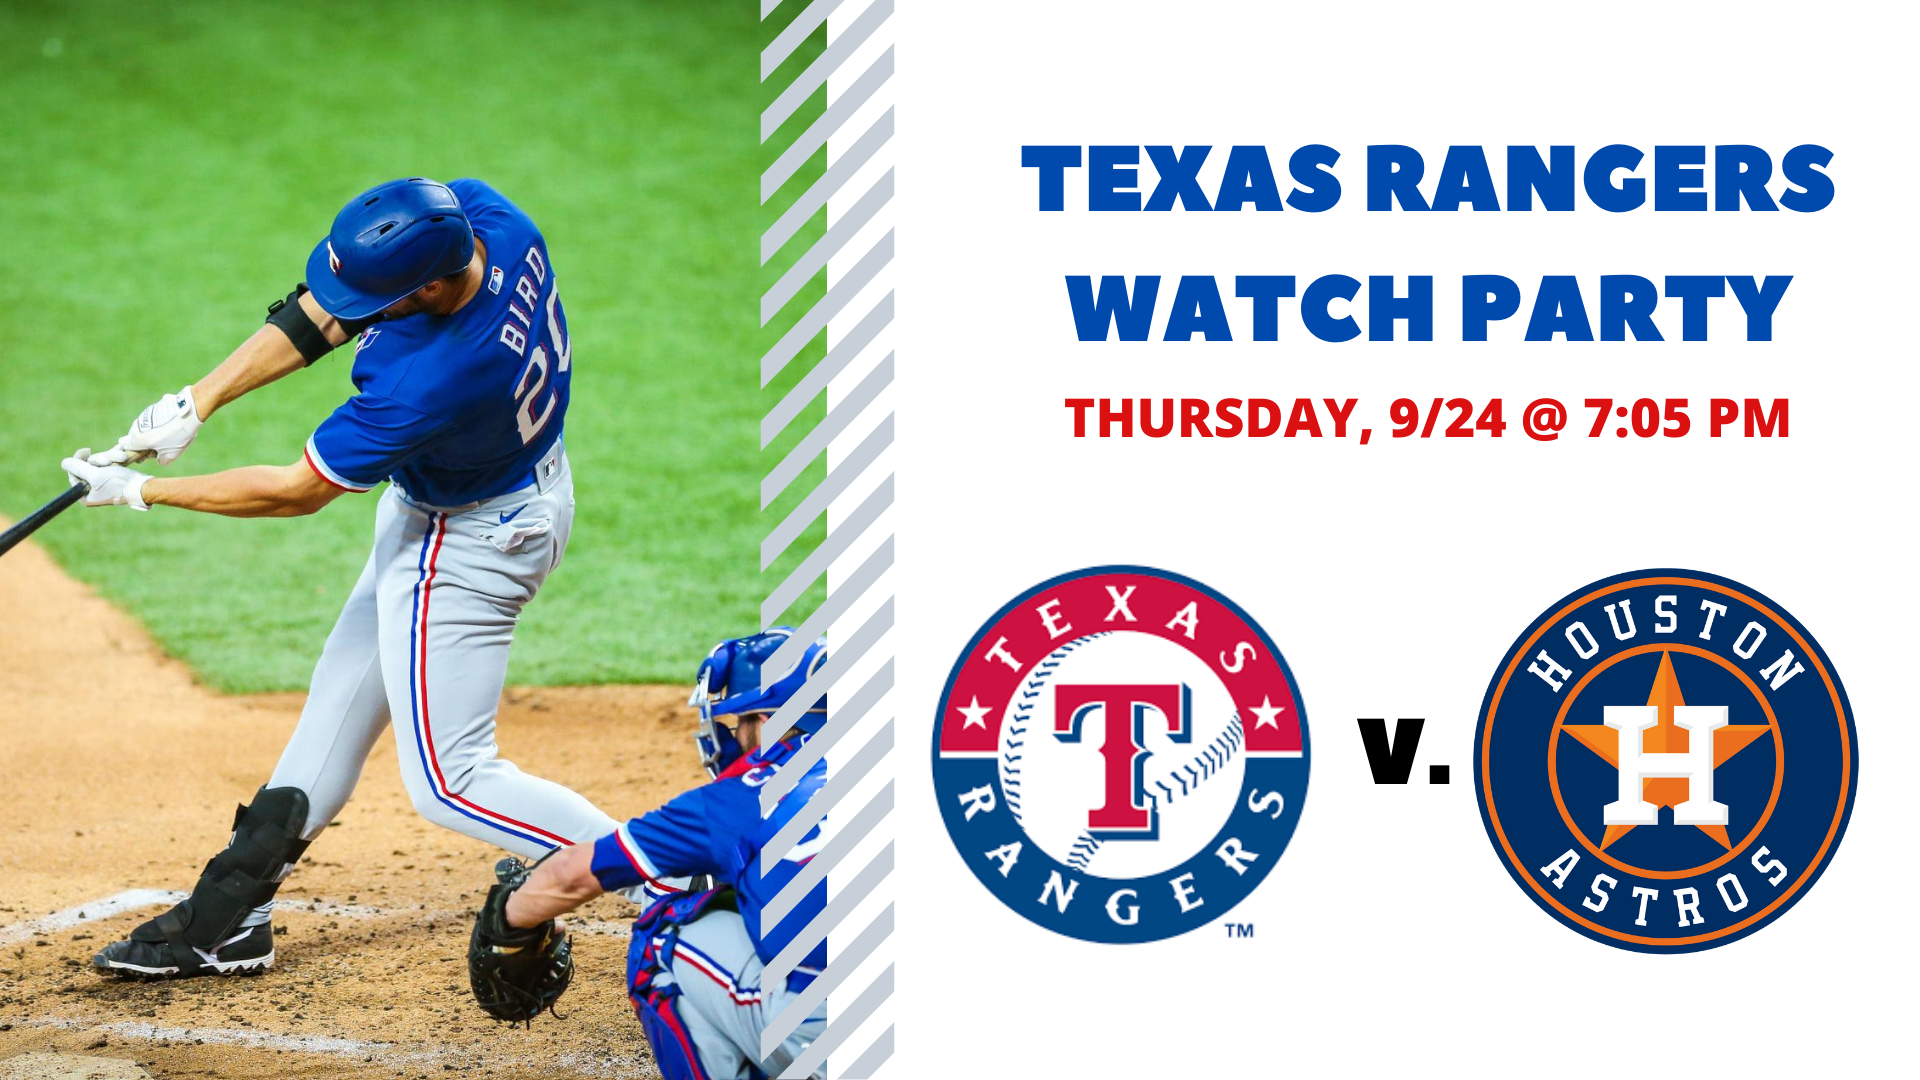 Promo image of Rangers v. Astros I Free Watch Party